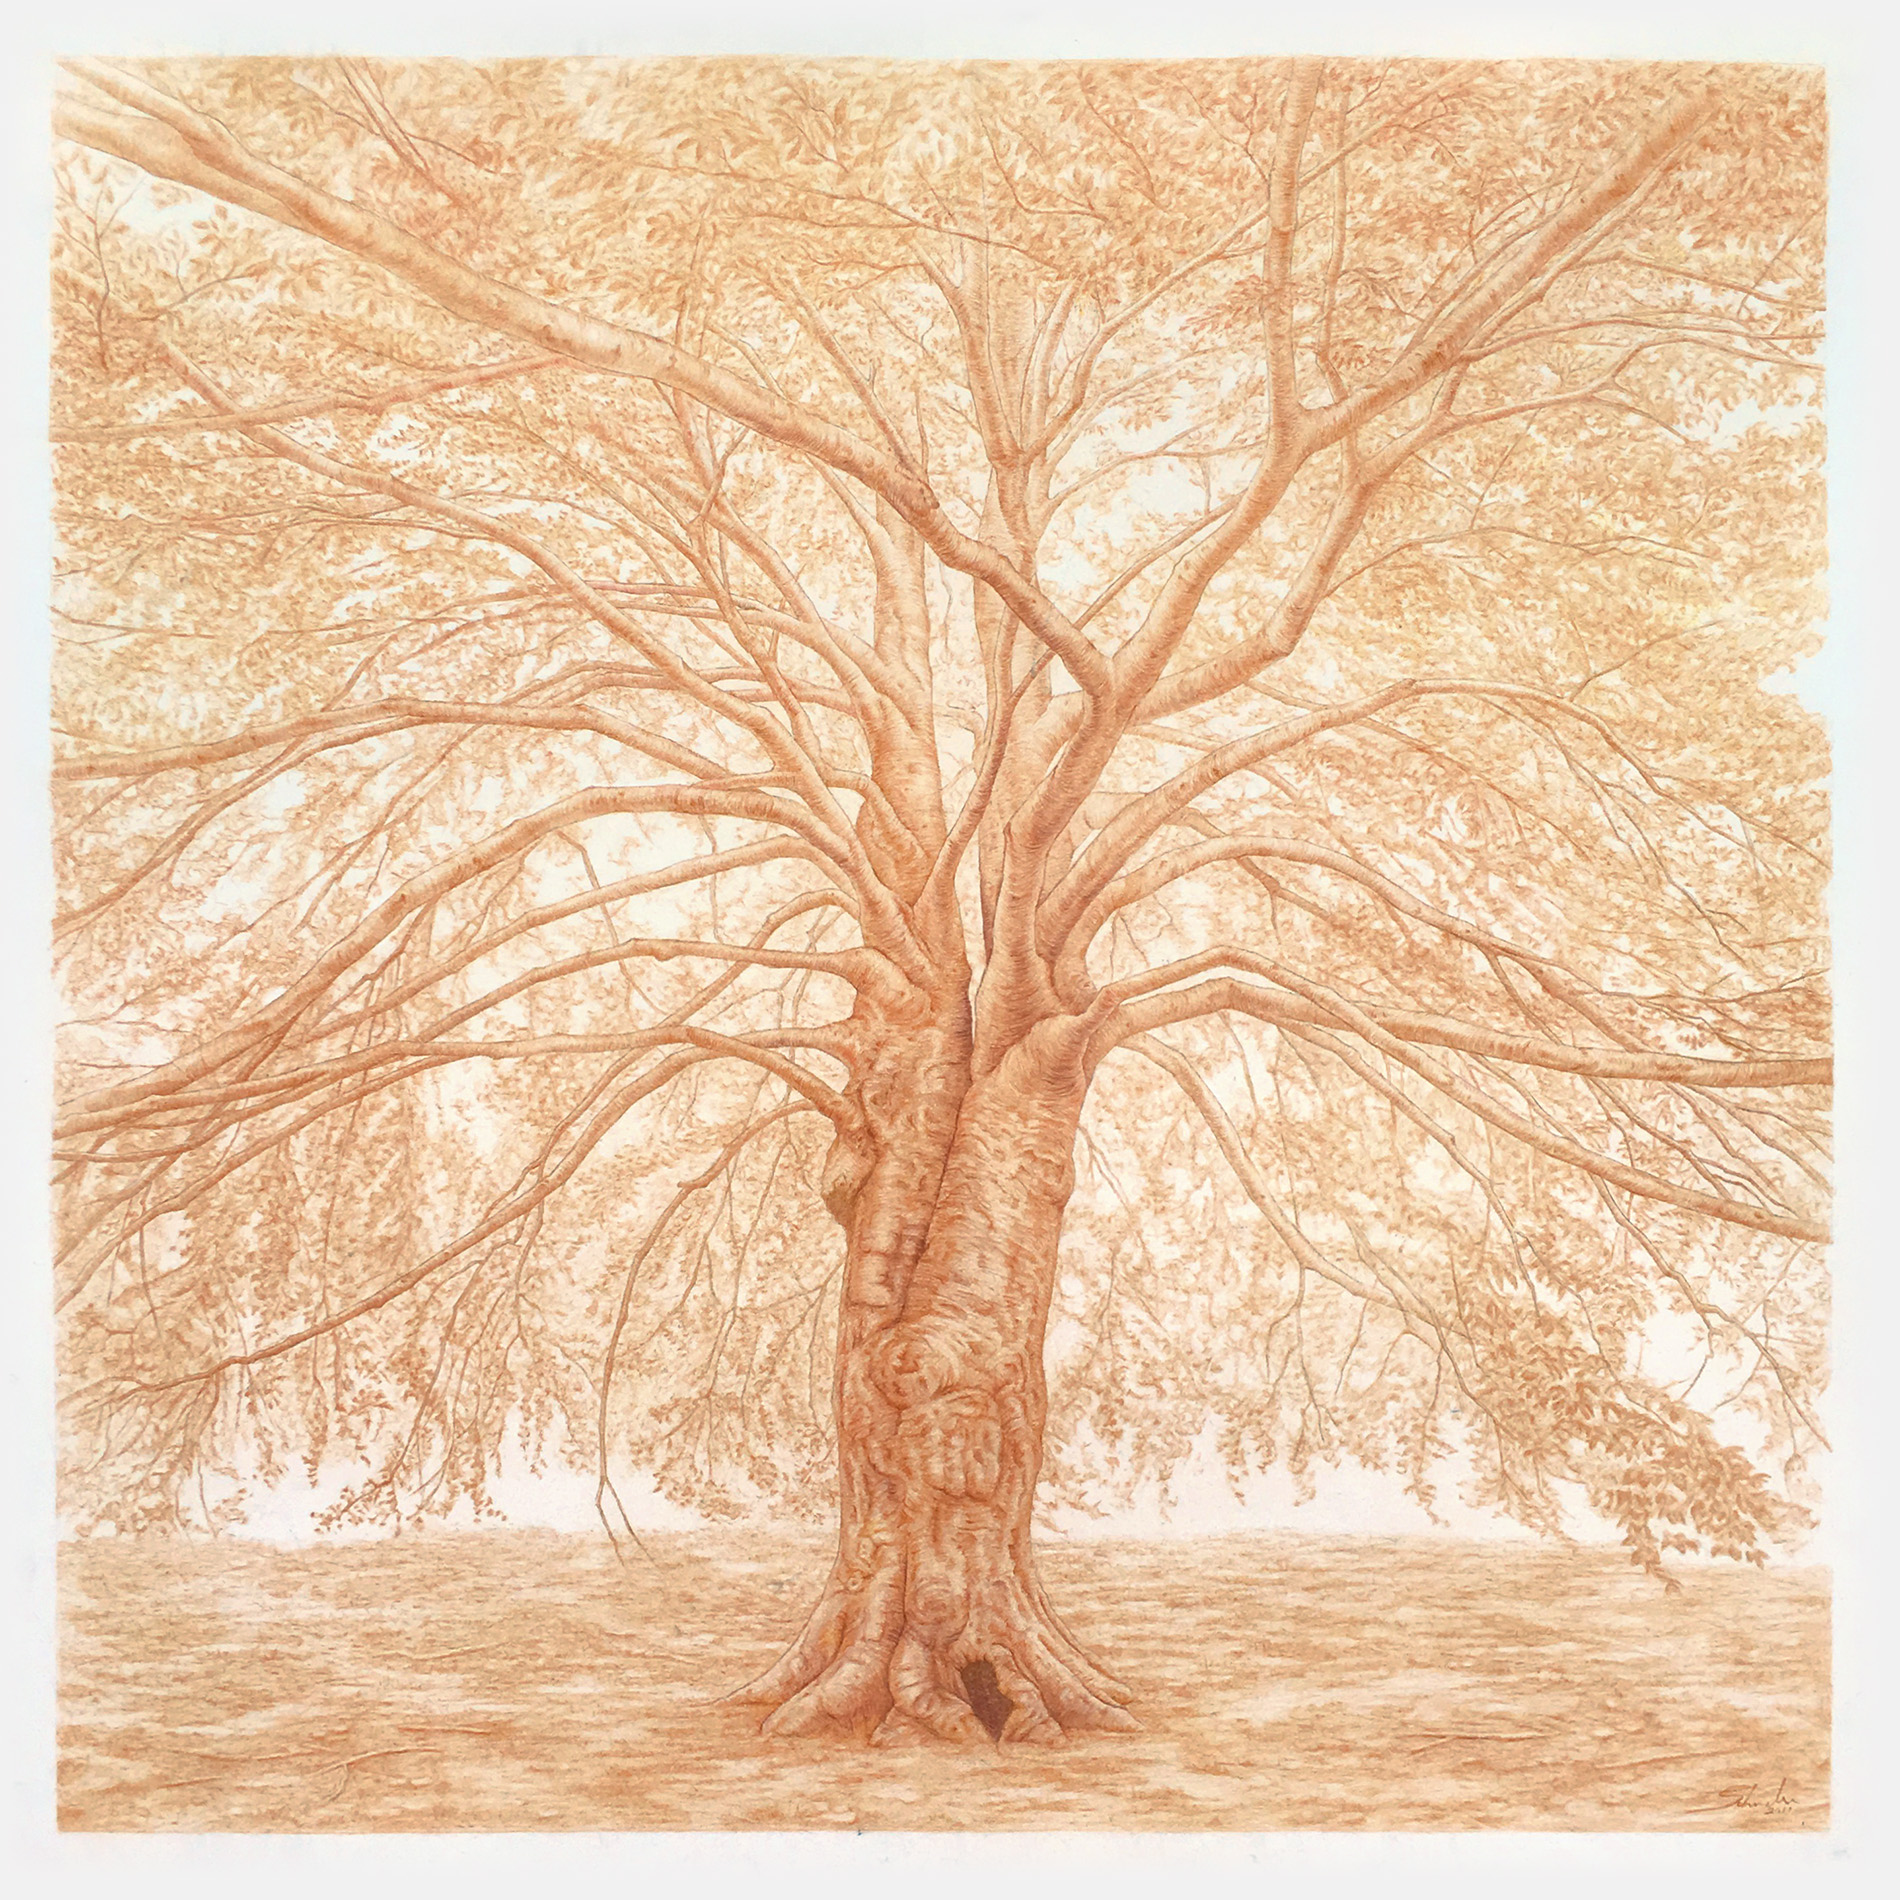 """Beech Tree   pastel pencil on paper  32"""" x 32""""  framed size: 38"""" x 38"""" natural cherry frame with off-white matt   $2,200"""